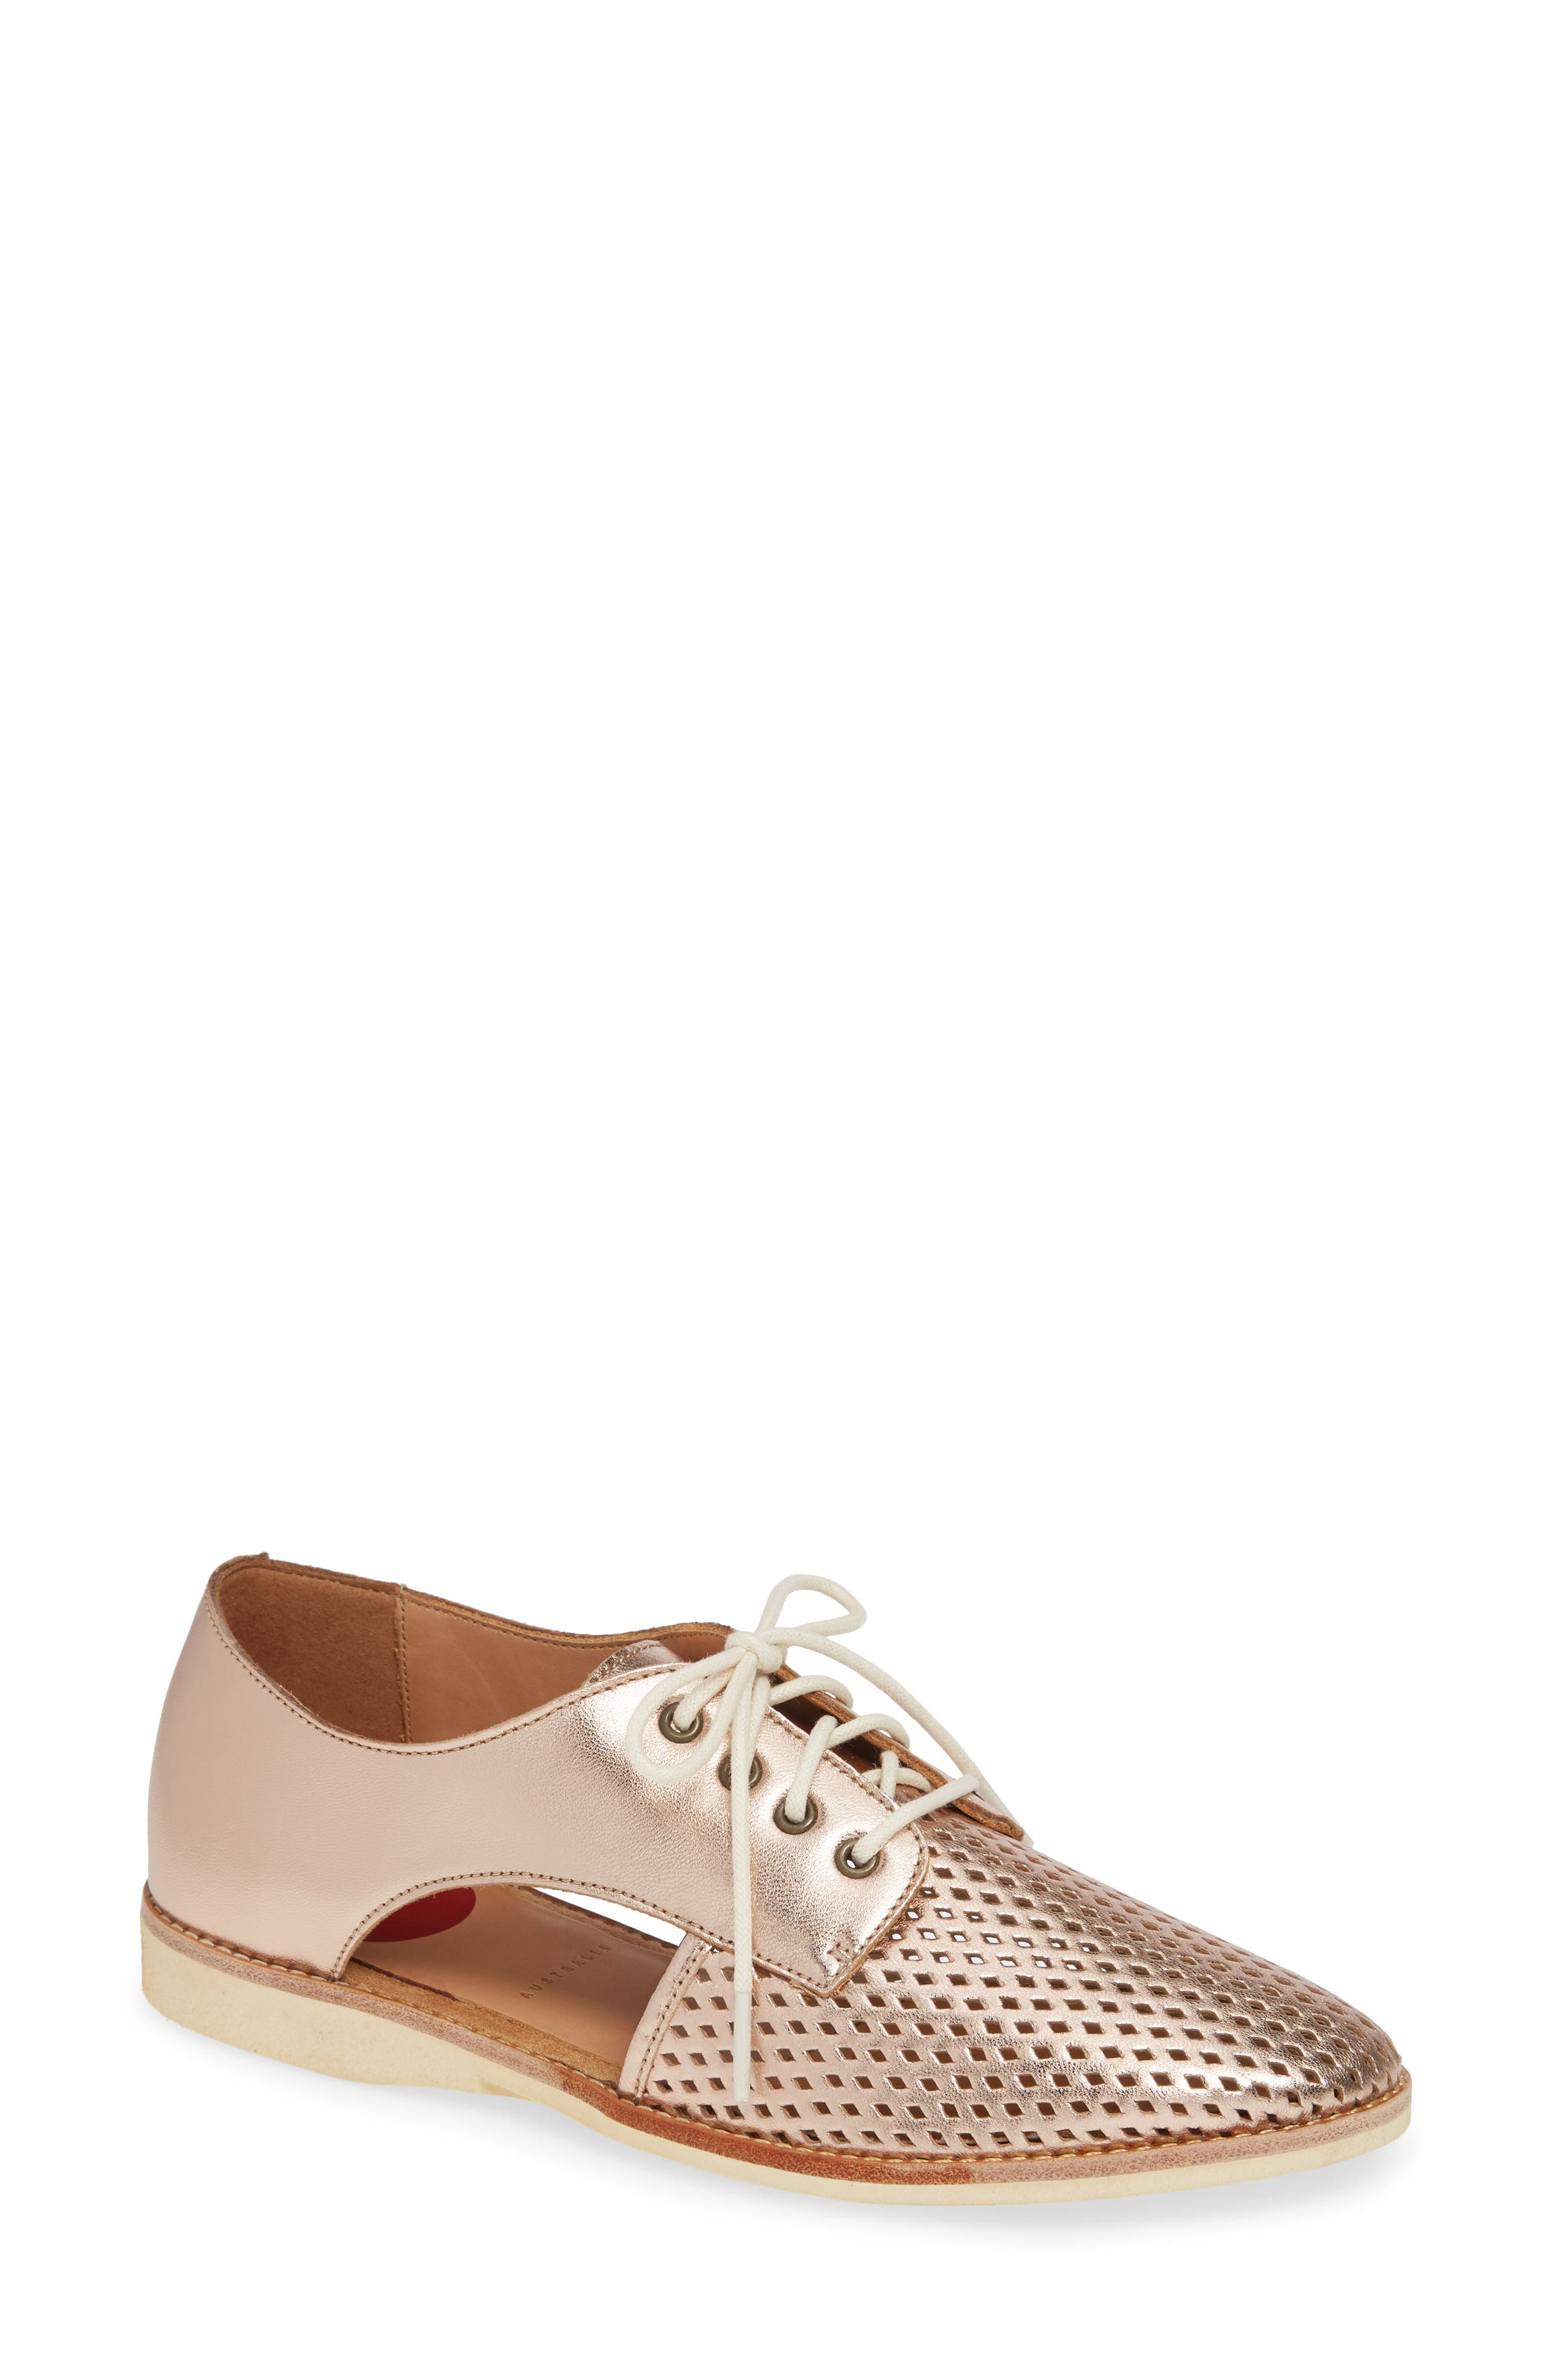 ROLLIE Sidecut Punch Perforated Derby in Rose Gold Leather